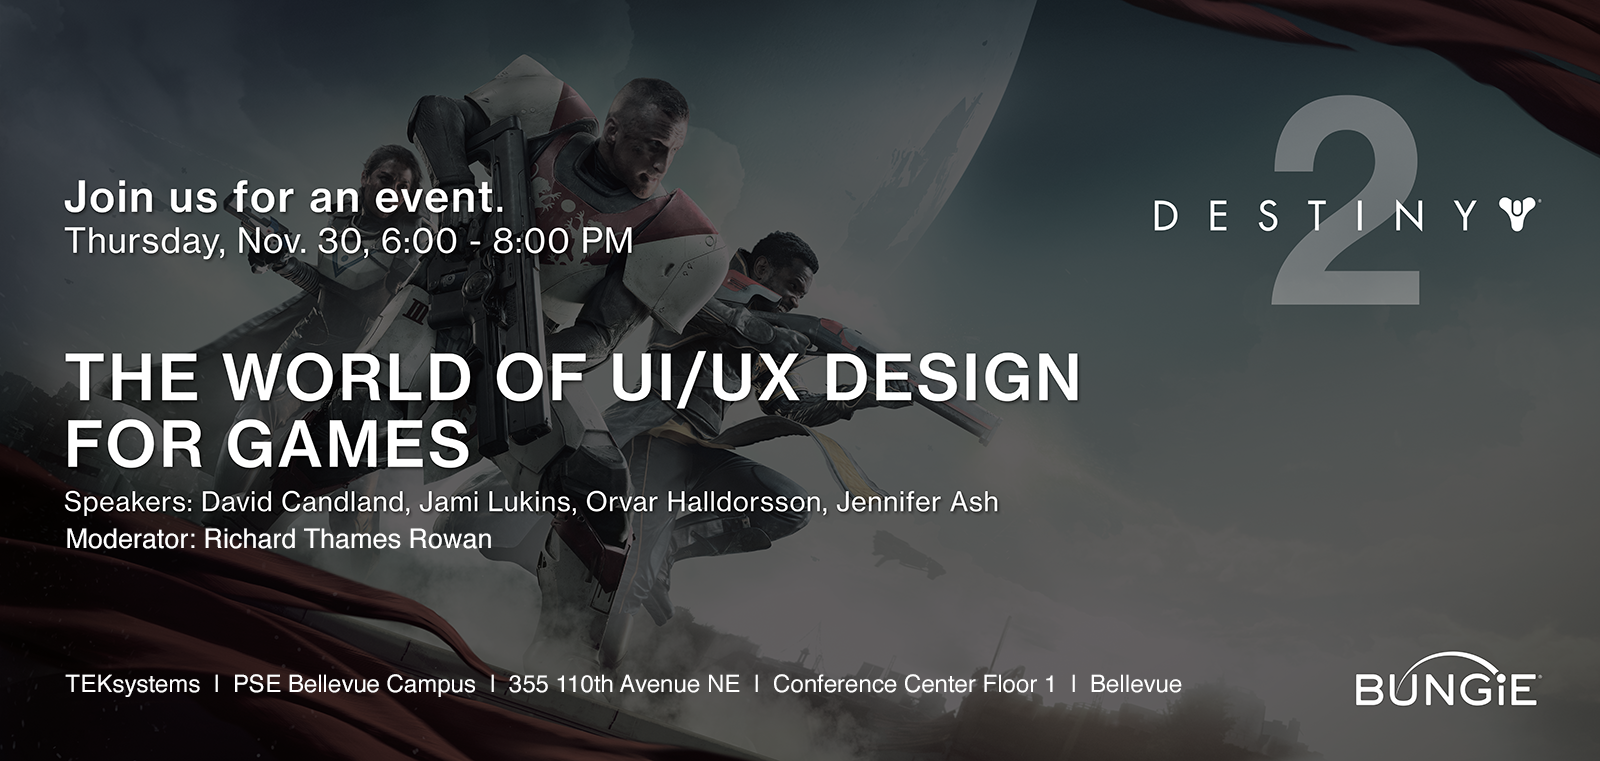 The World of UI UX Design for Games